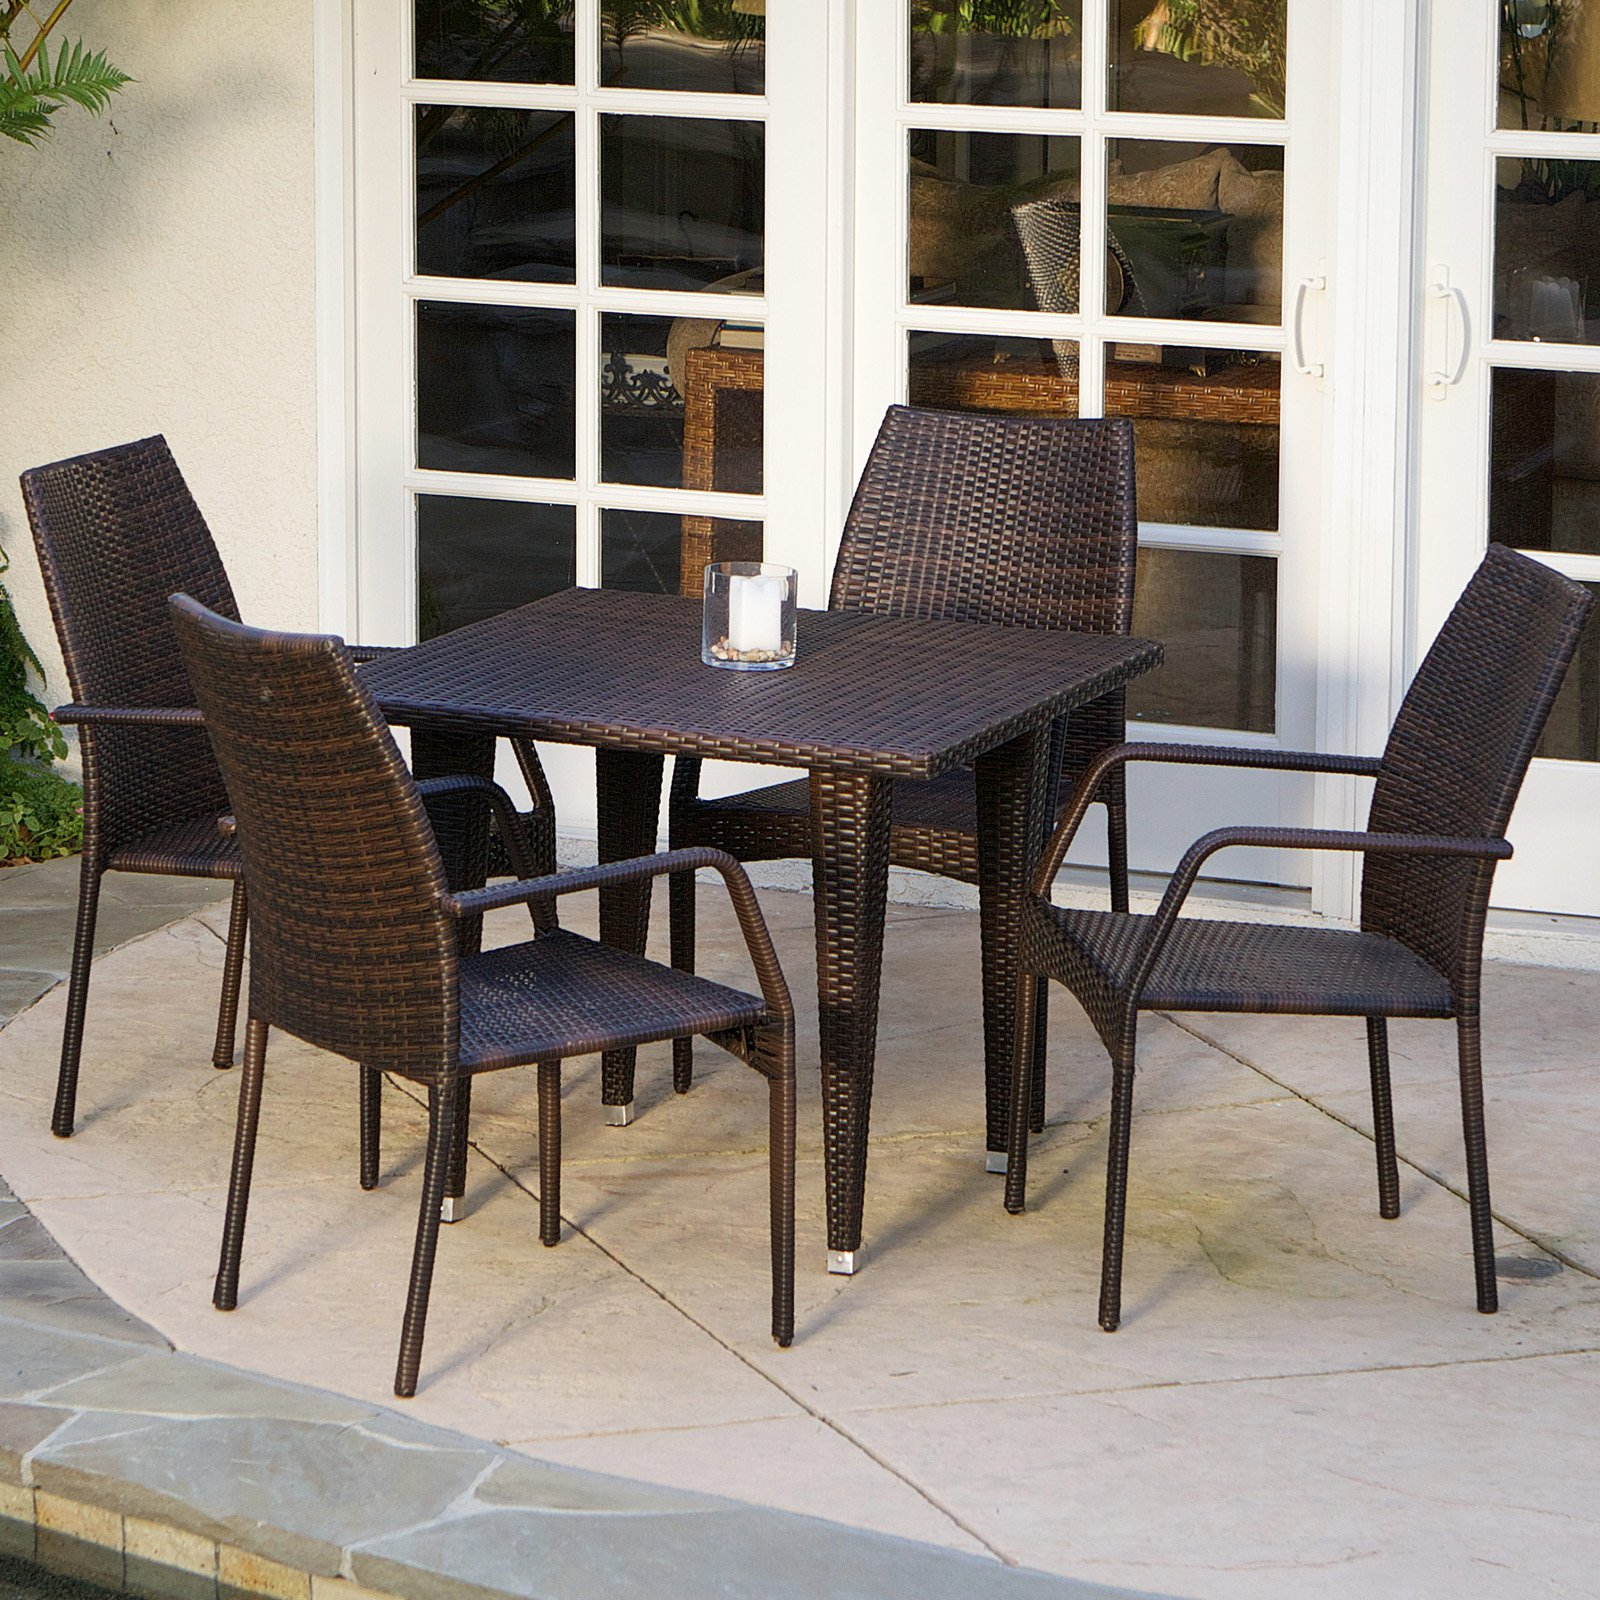 Canoga All-Weather Wicker Patio Dining Room Set Seats 4 by GDF Studio